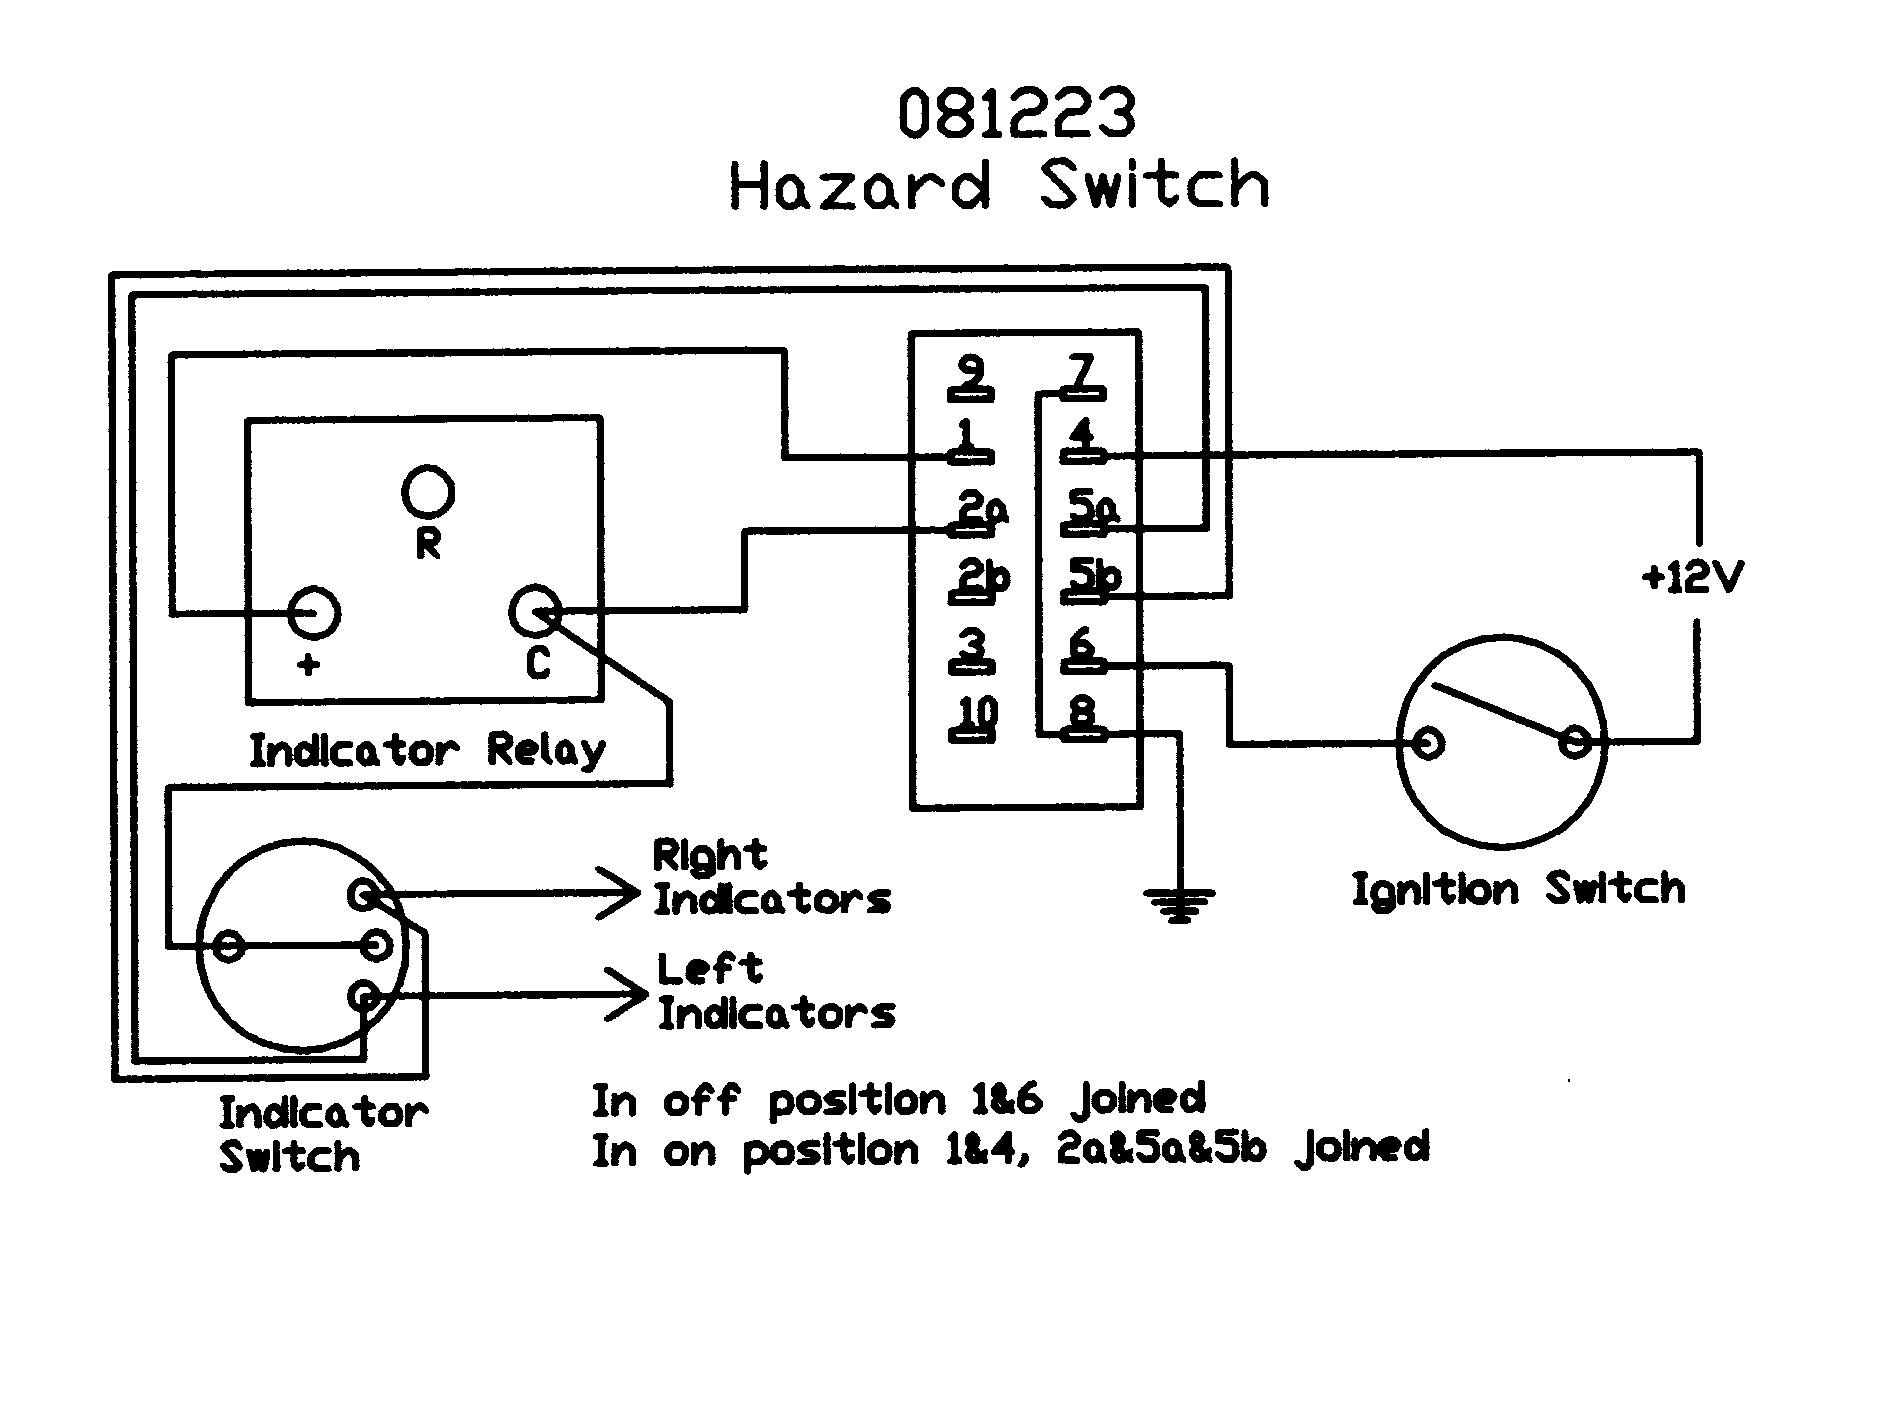 Light Switch Drawing At Free For Personal Use Wiring Diagram Lamp 1904x1424 Rocker Hazard